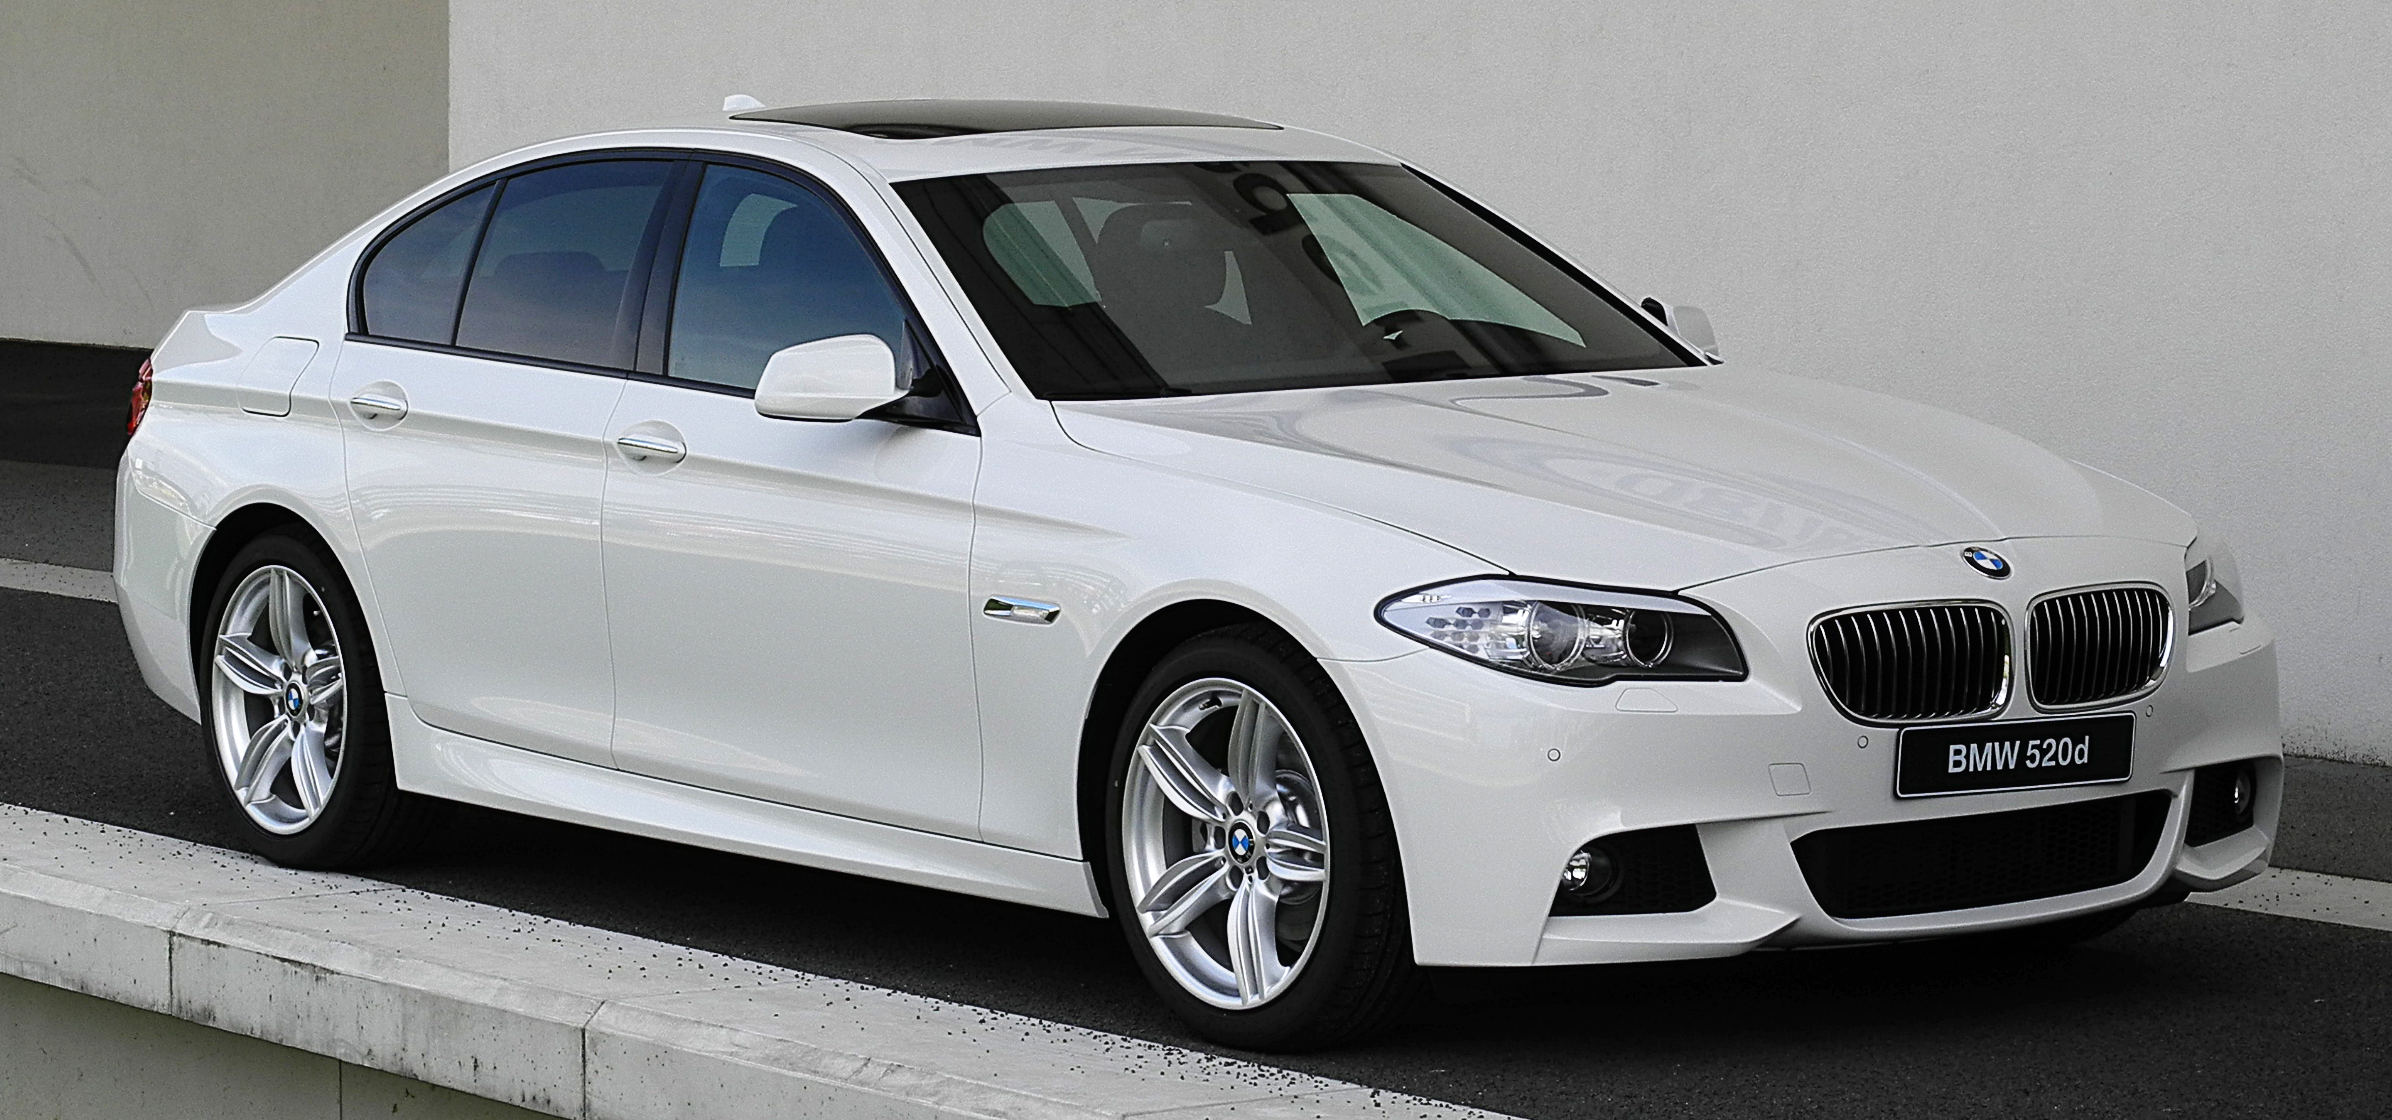 bmw 520d technical details, history, photos on better parts ltd